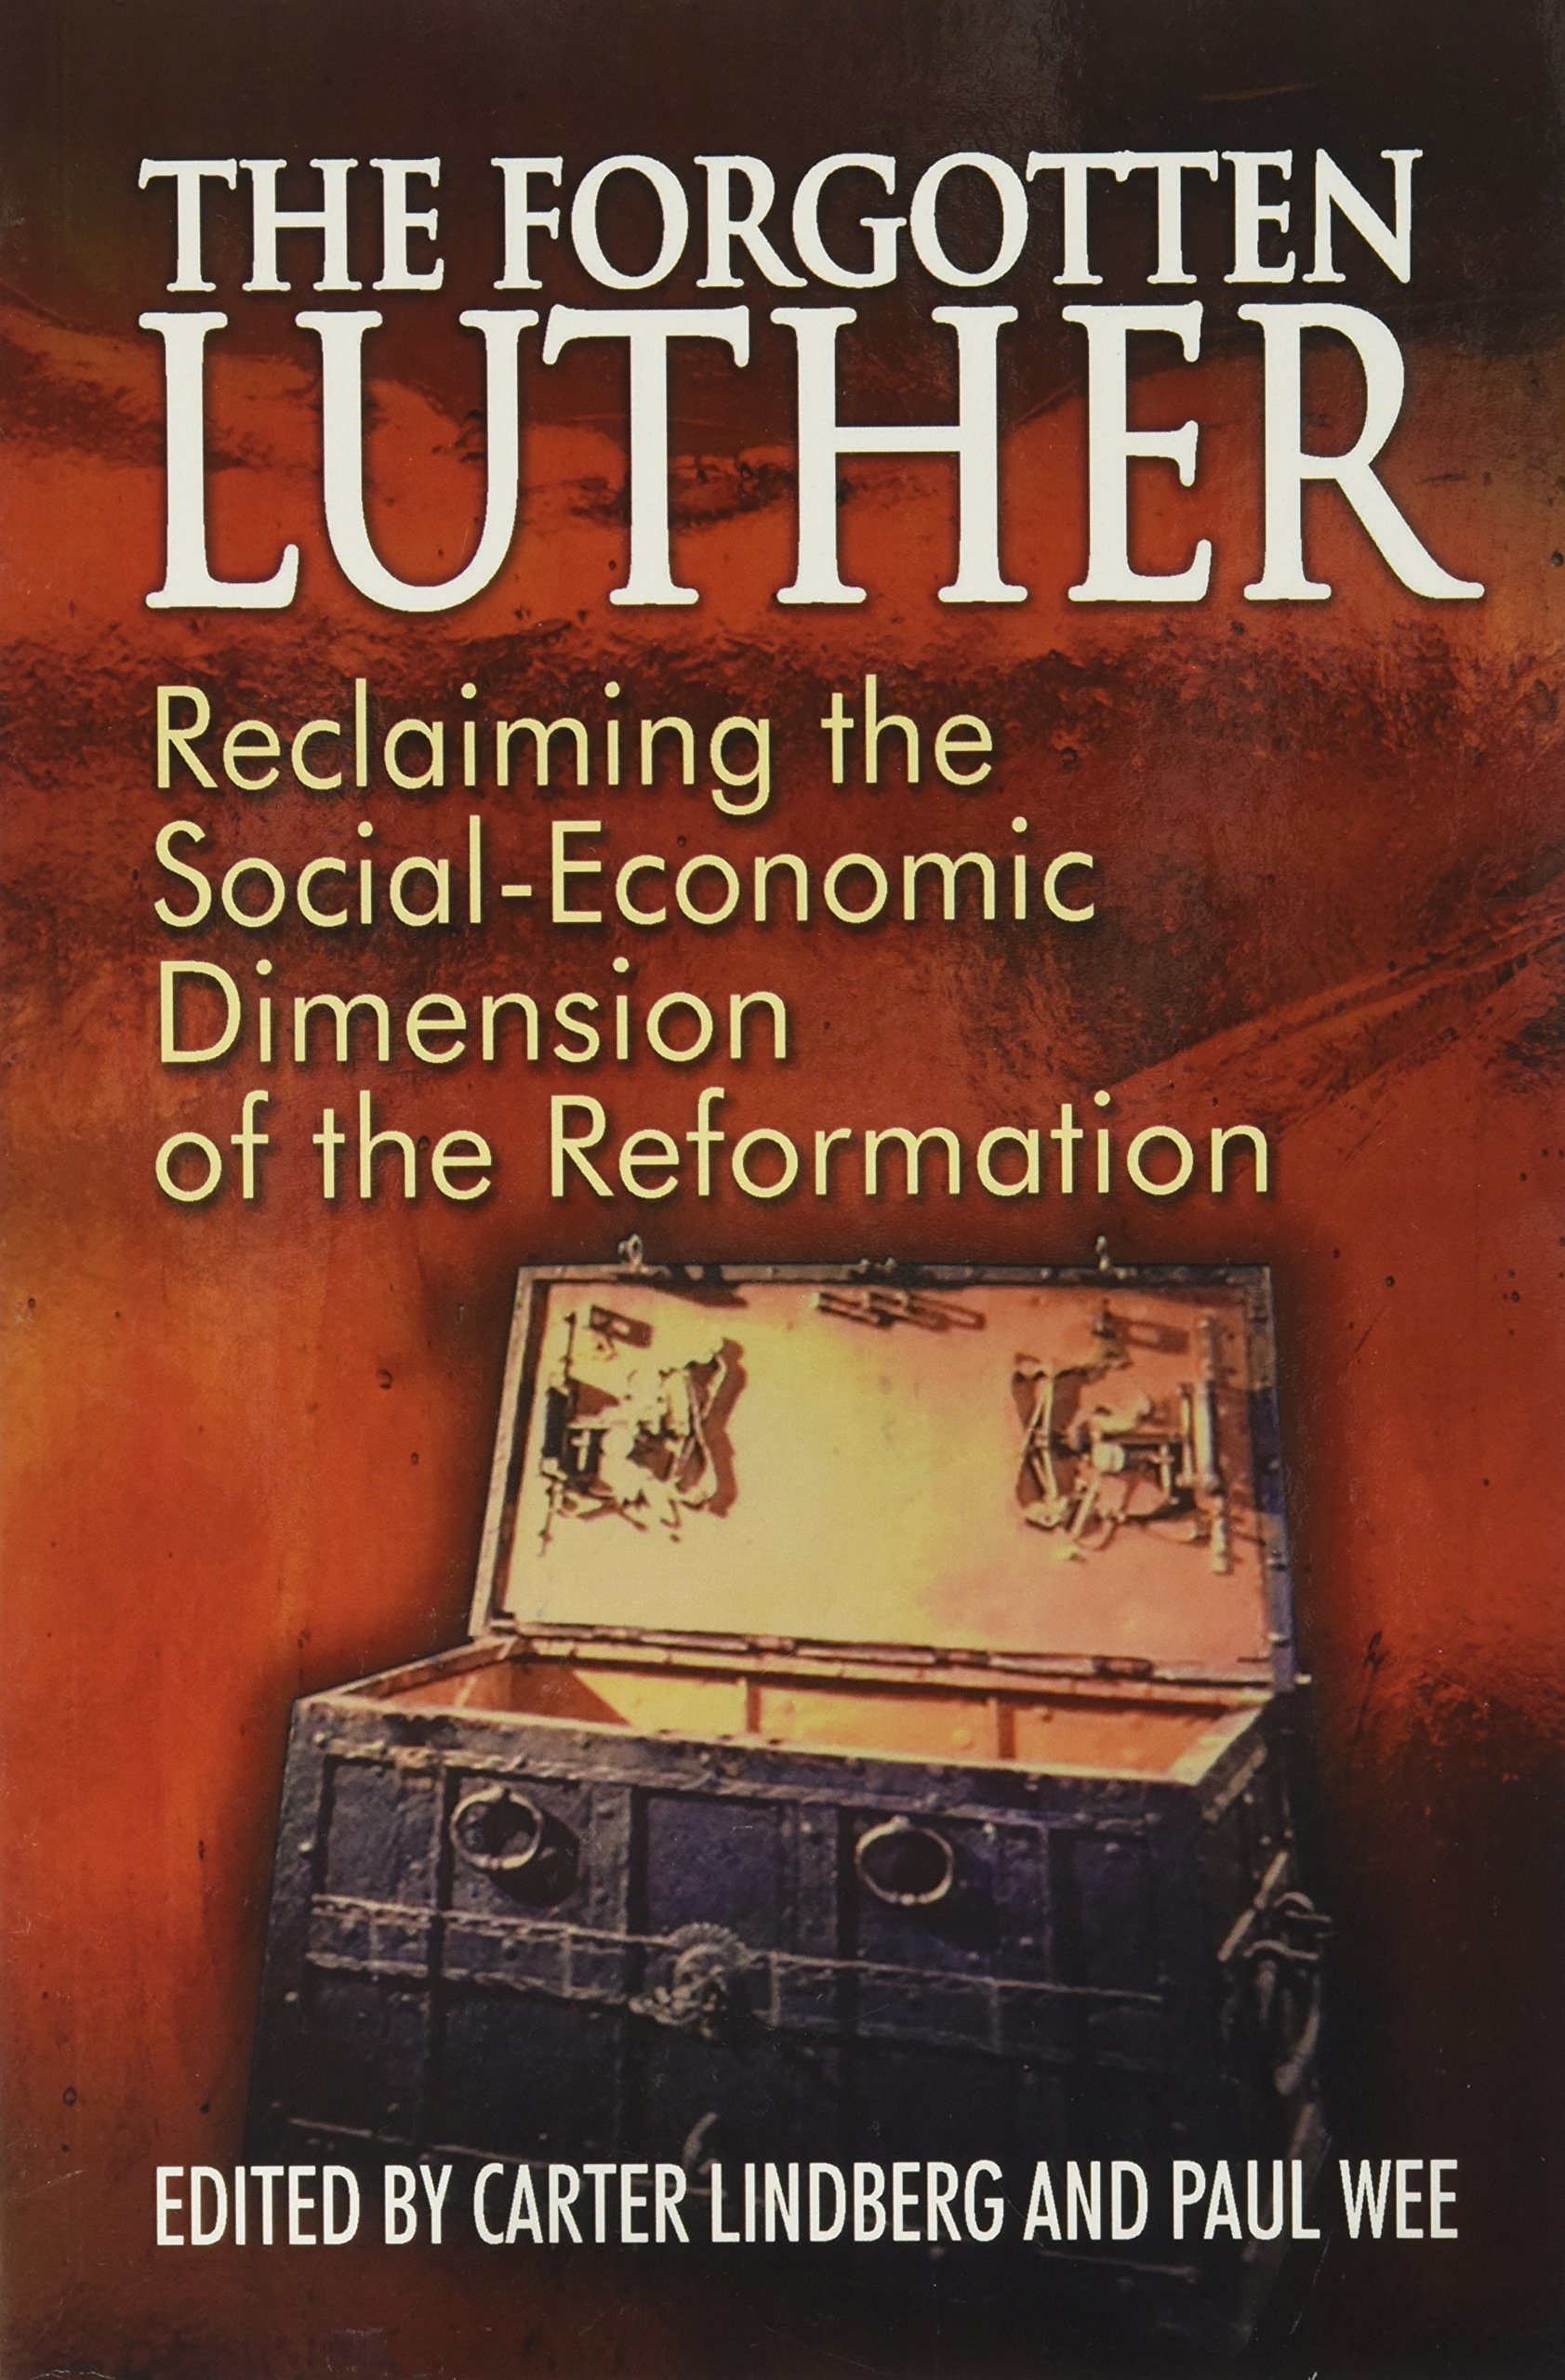 The Forgotten Luther: Reclaiming the Social-Economic Dimension of the Reformation